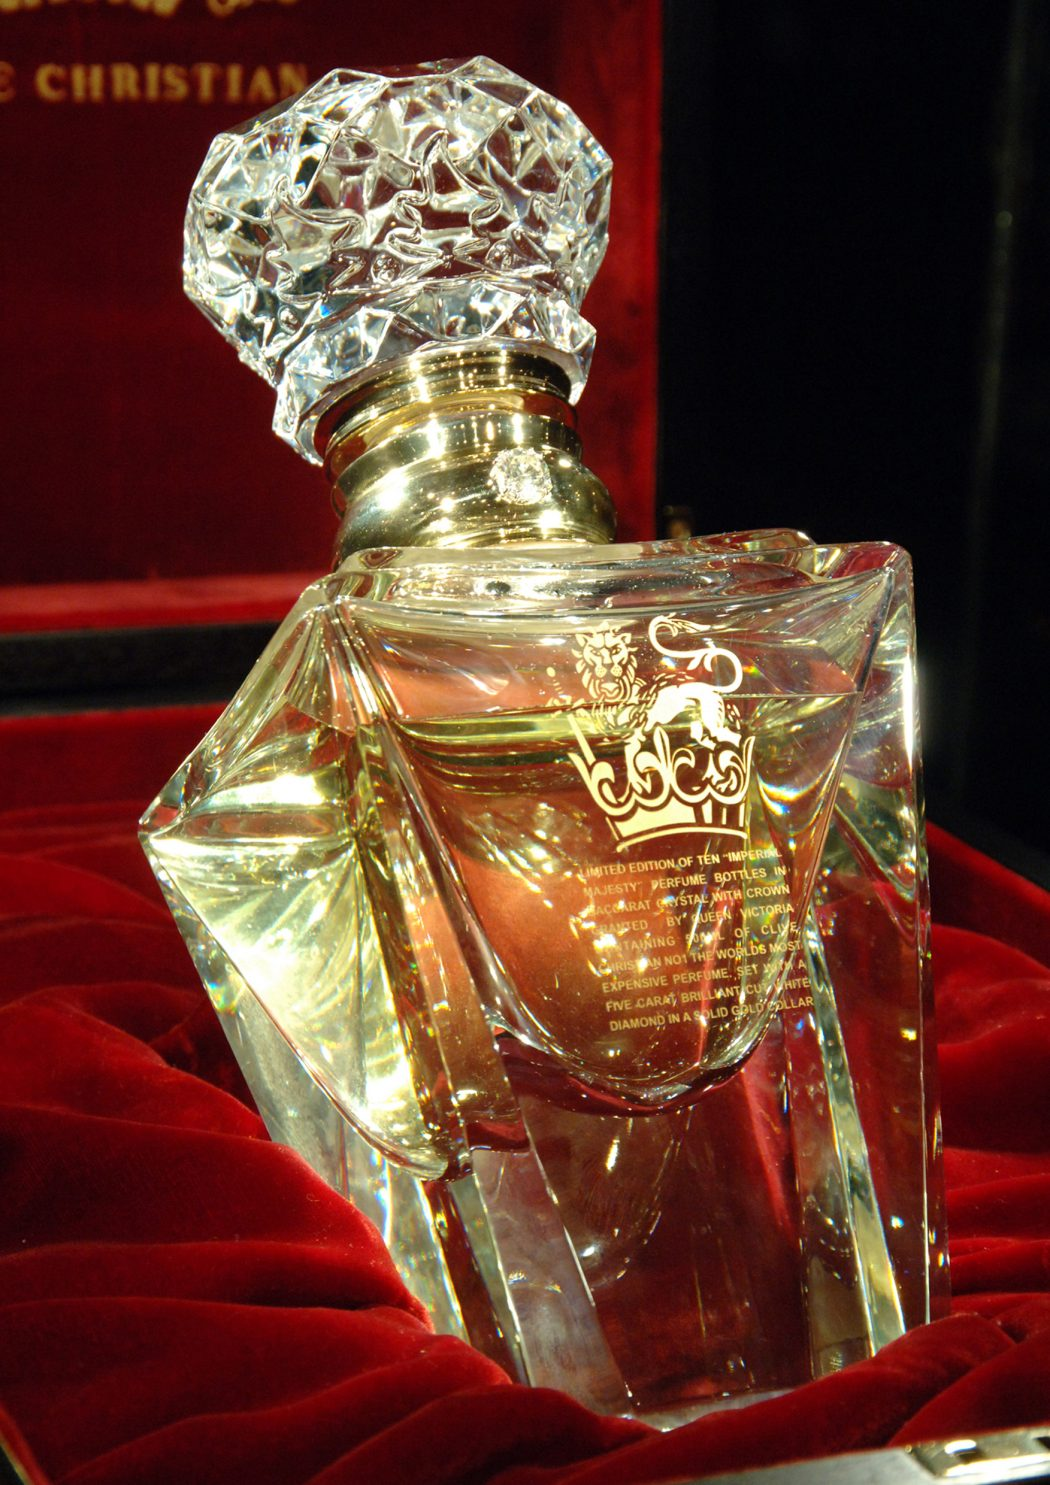 clive christian no 1 perfume imperial majesty edition closeup1 10 Most Expensive Perfumes for Women in The World 2013